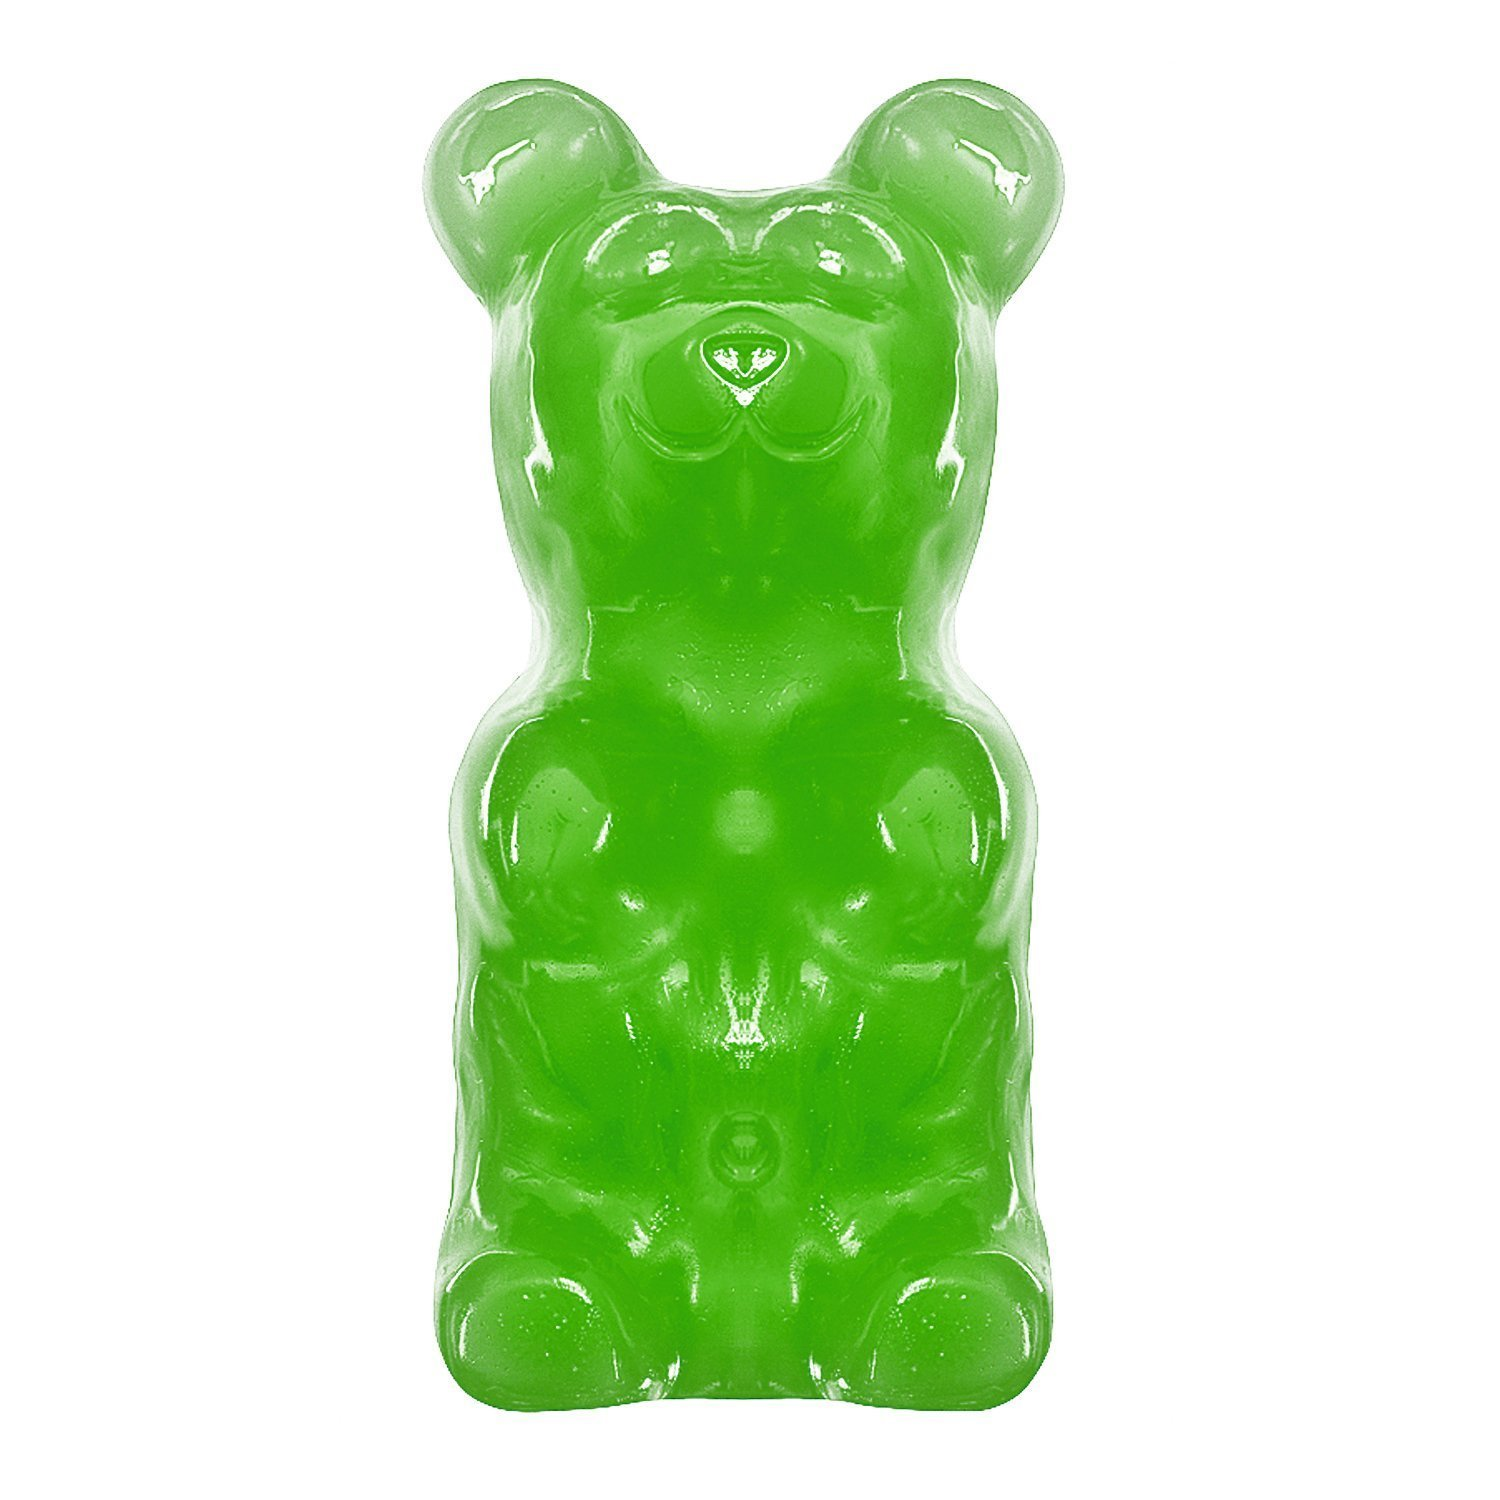 World's Largest Gummy Bear, Approx 5-pounds Giant Gummy Bear - Lime